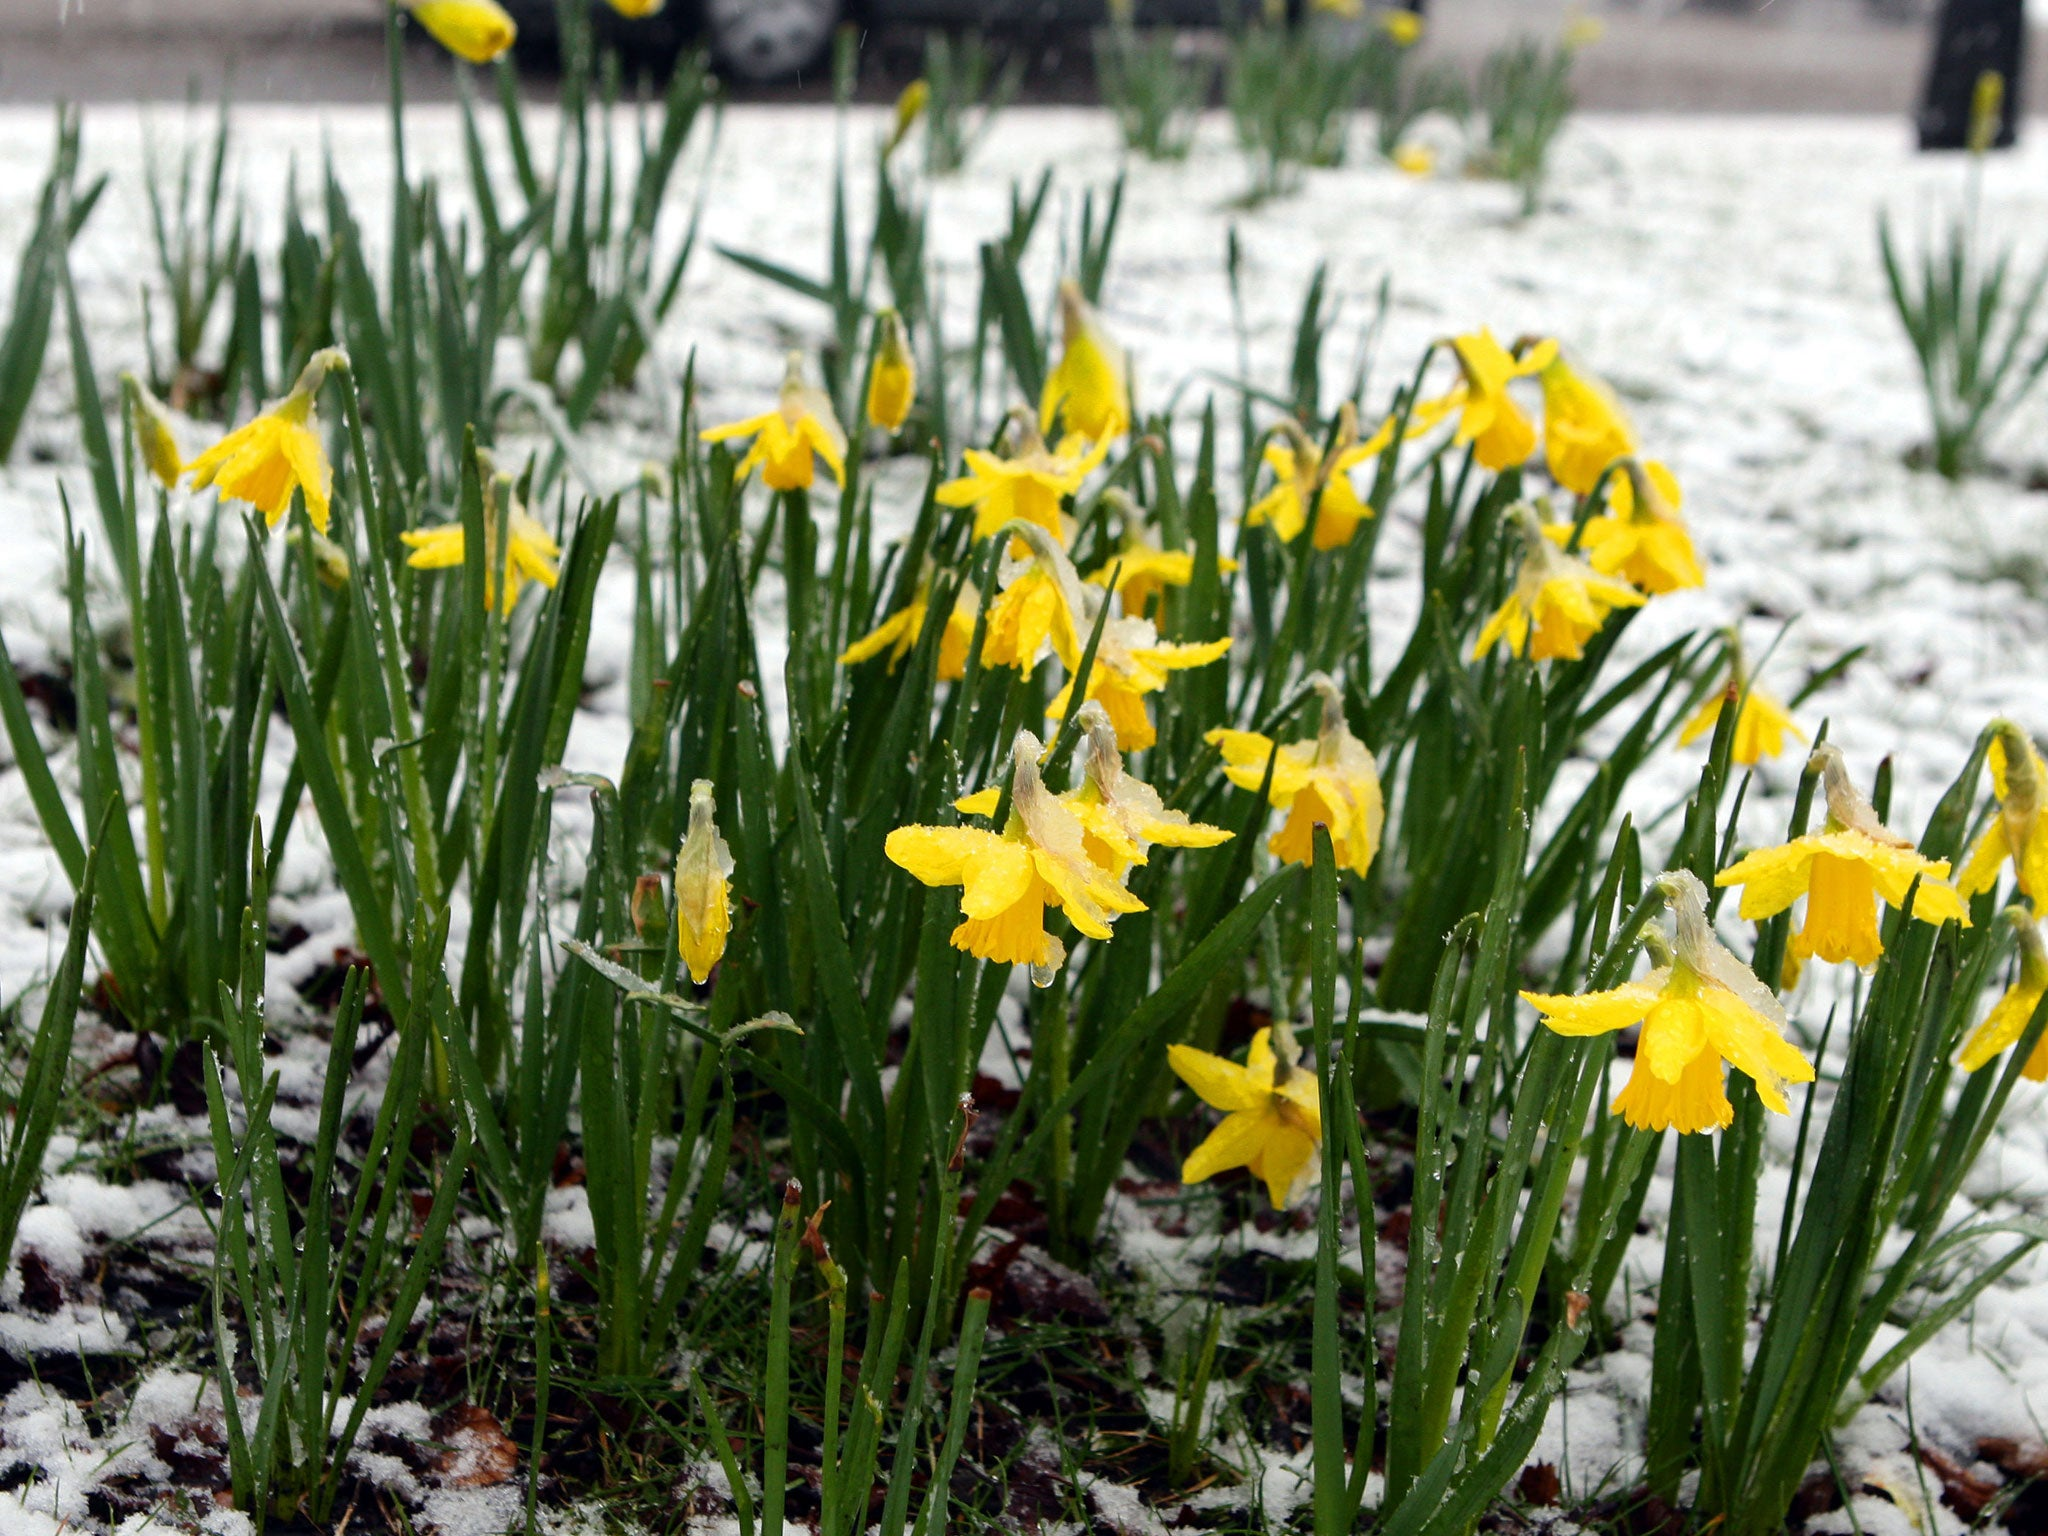 St davids day five things you need to know about waless st davids day five things you need to know about waless national celebration the independent buycottarizona